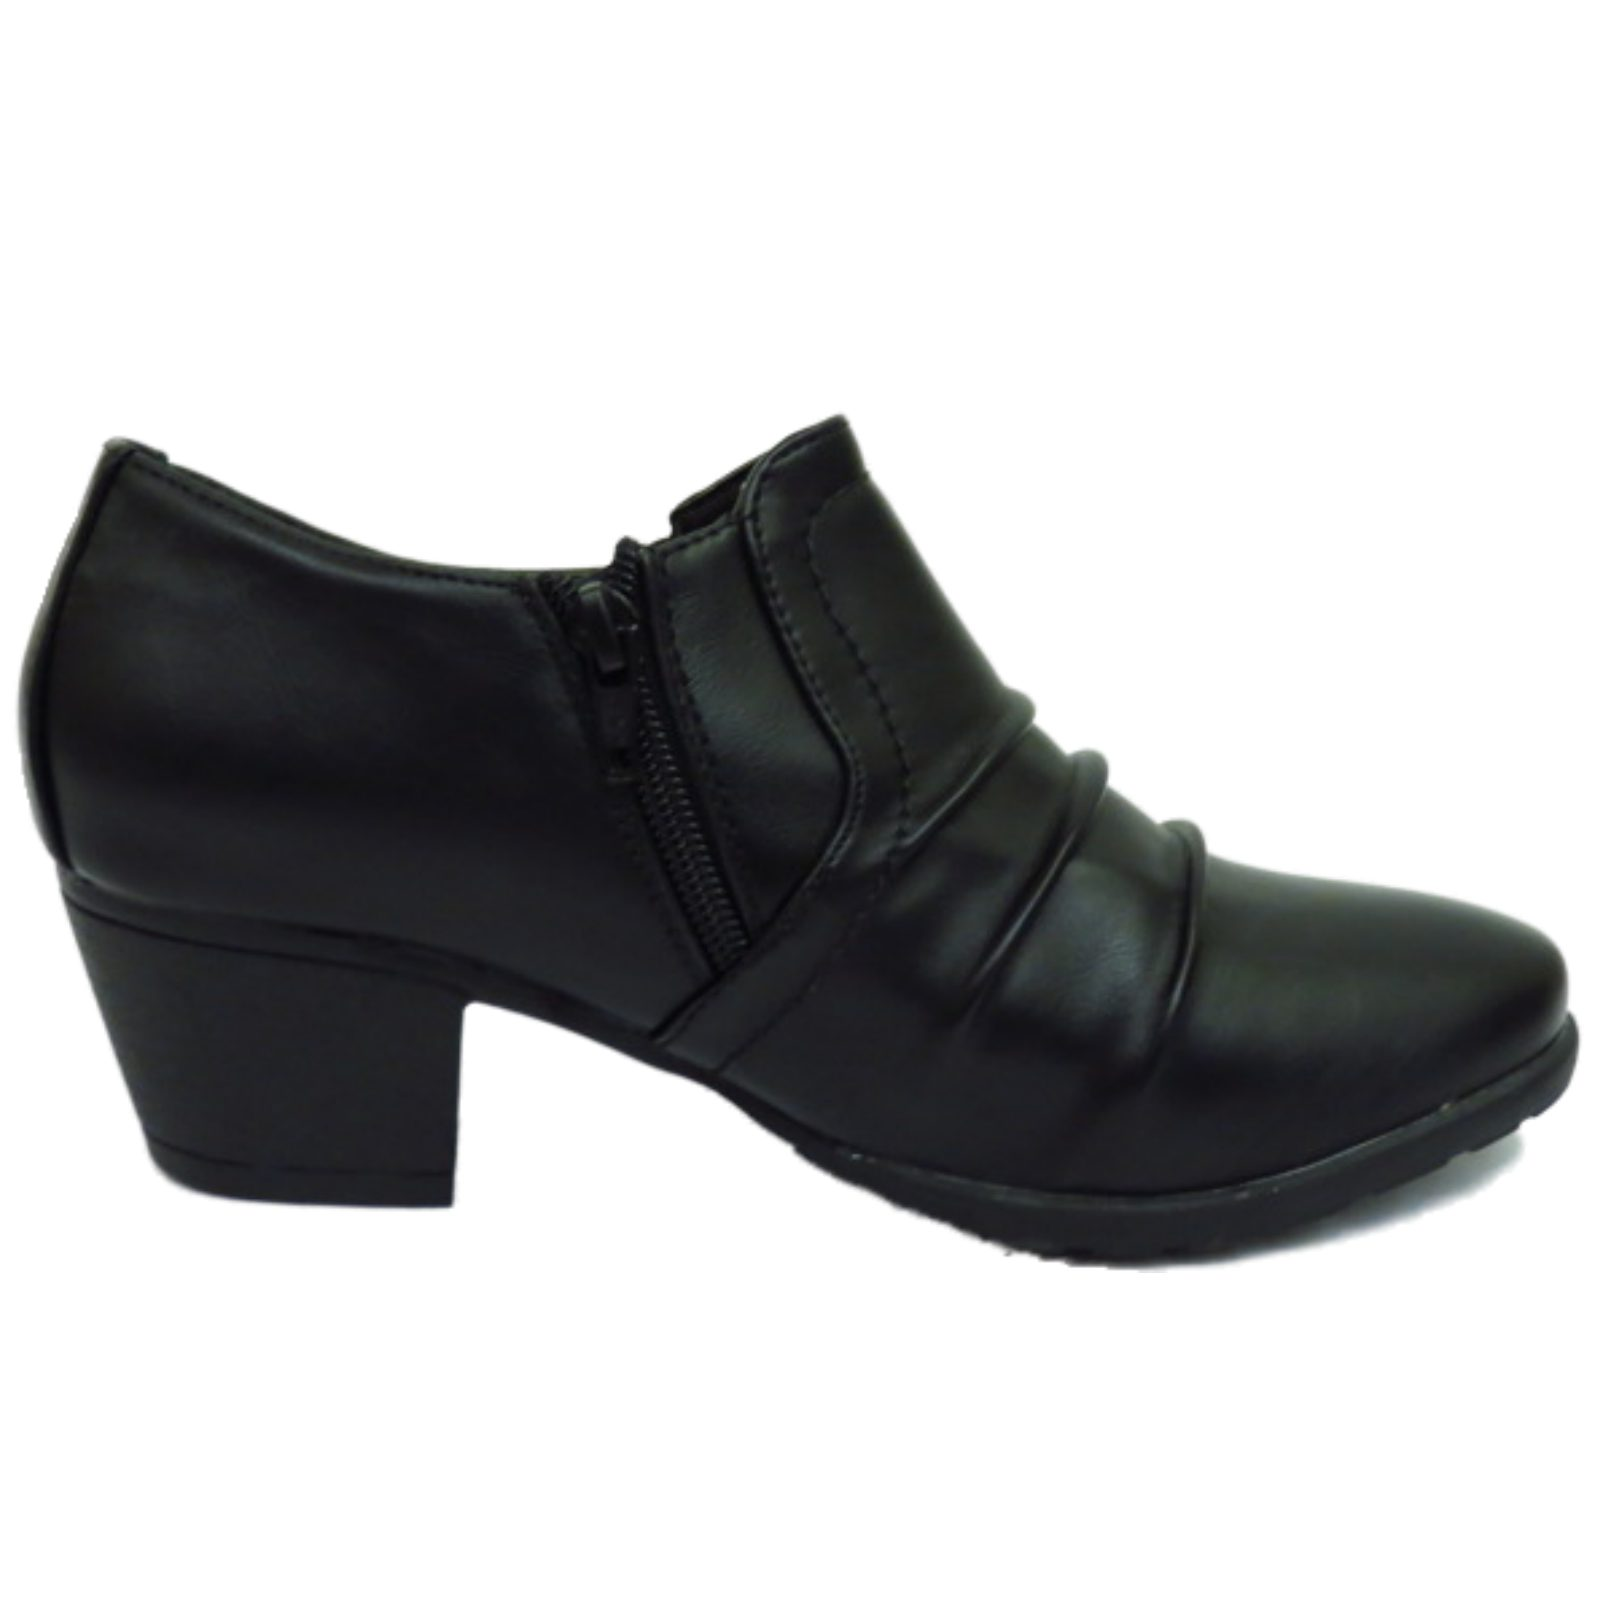 LADIES BLACK LOW-HEEL ZIP-UP RUCHED PIXIE BOHO ANKLE BOOTS WORK ...